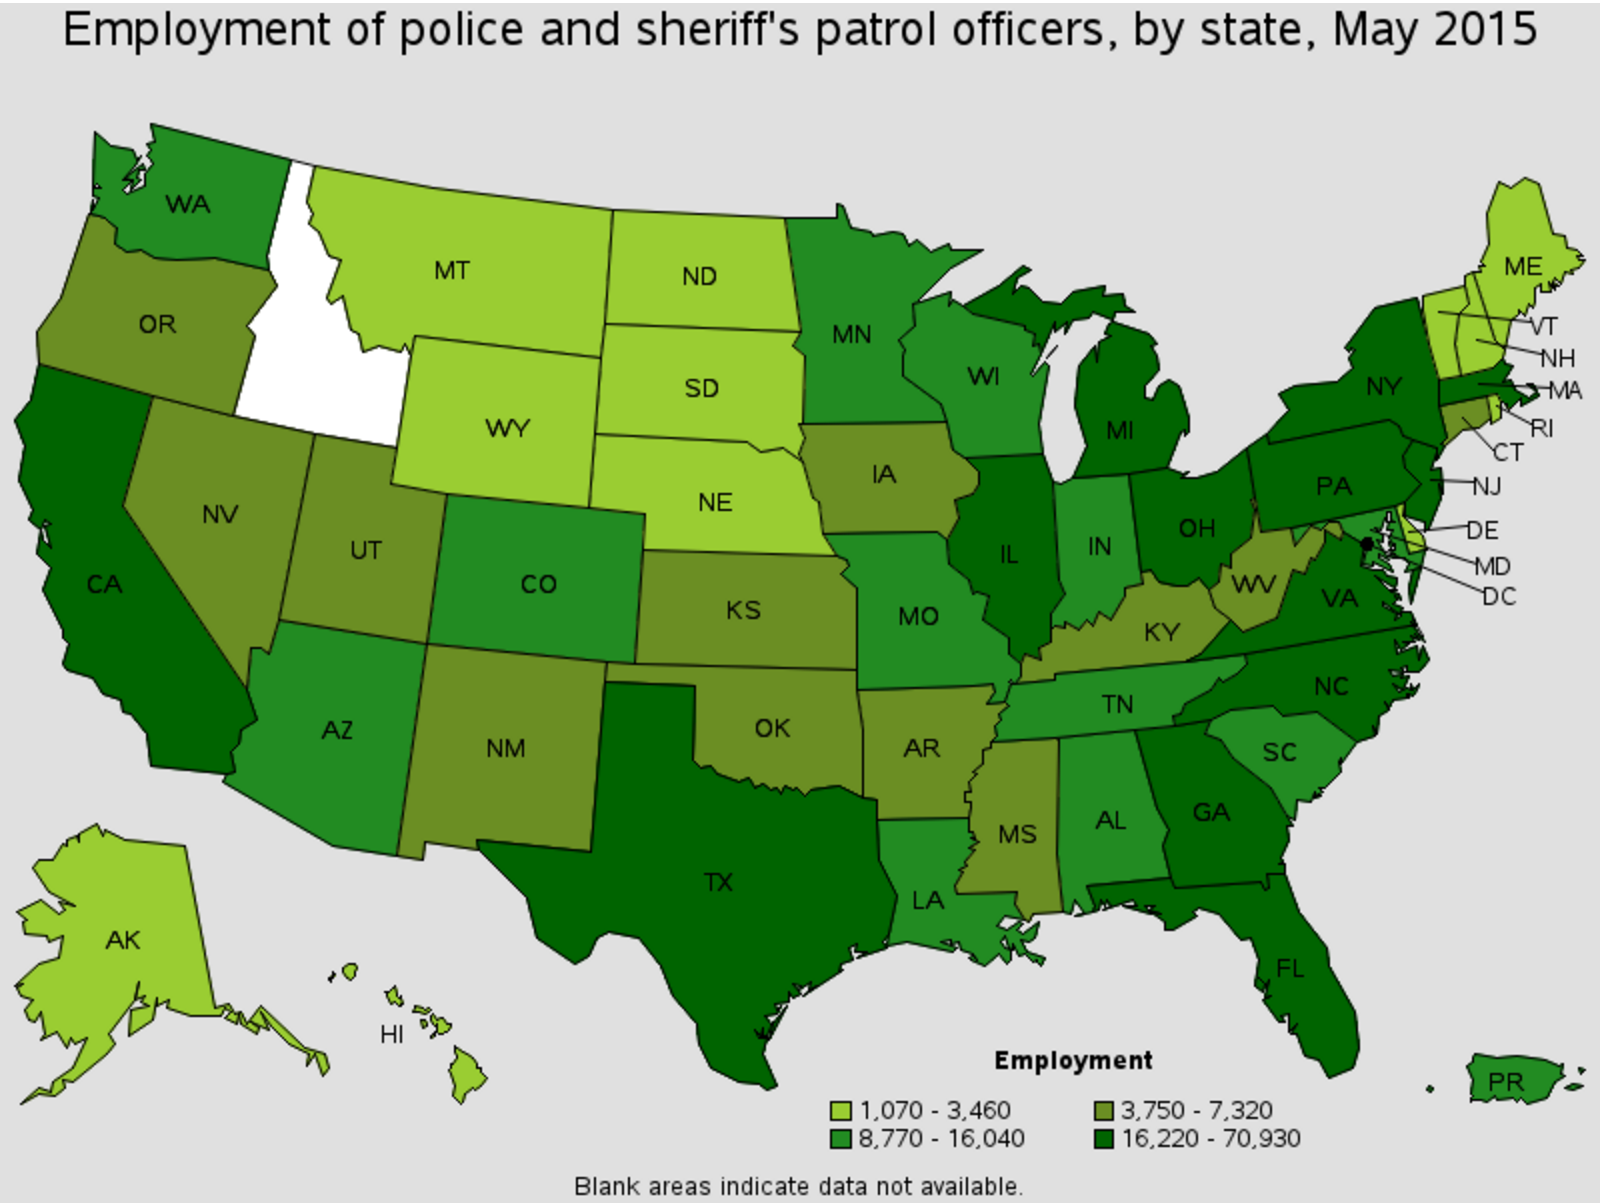 Colleyville police officer career outlook by state